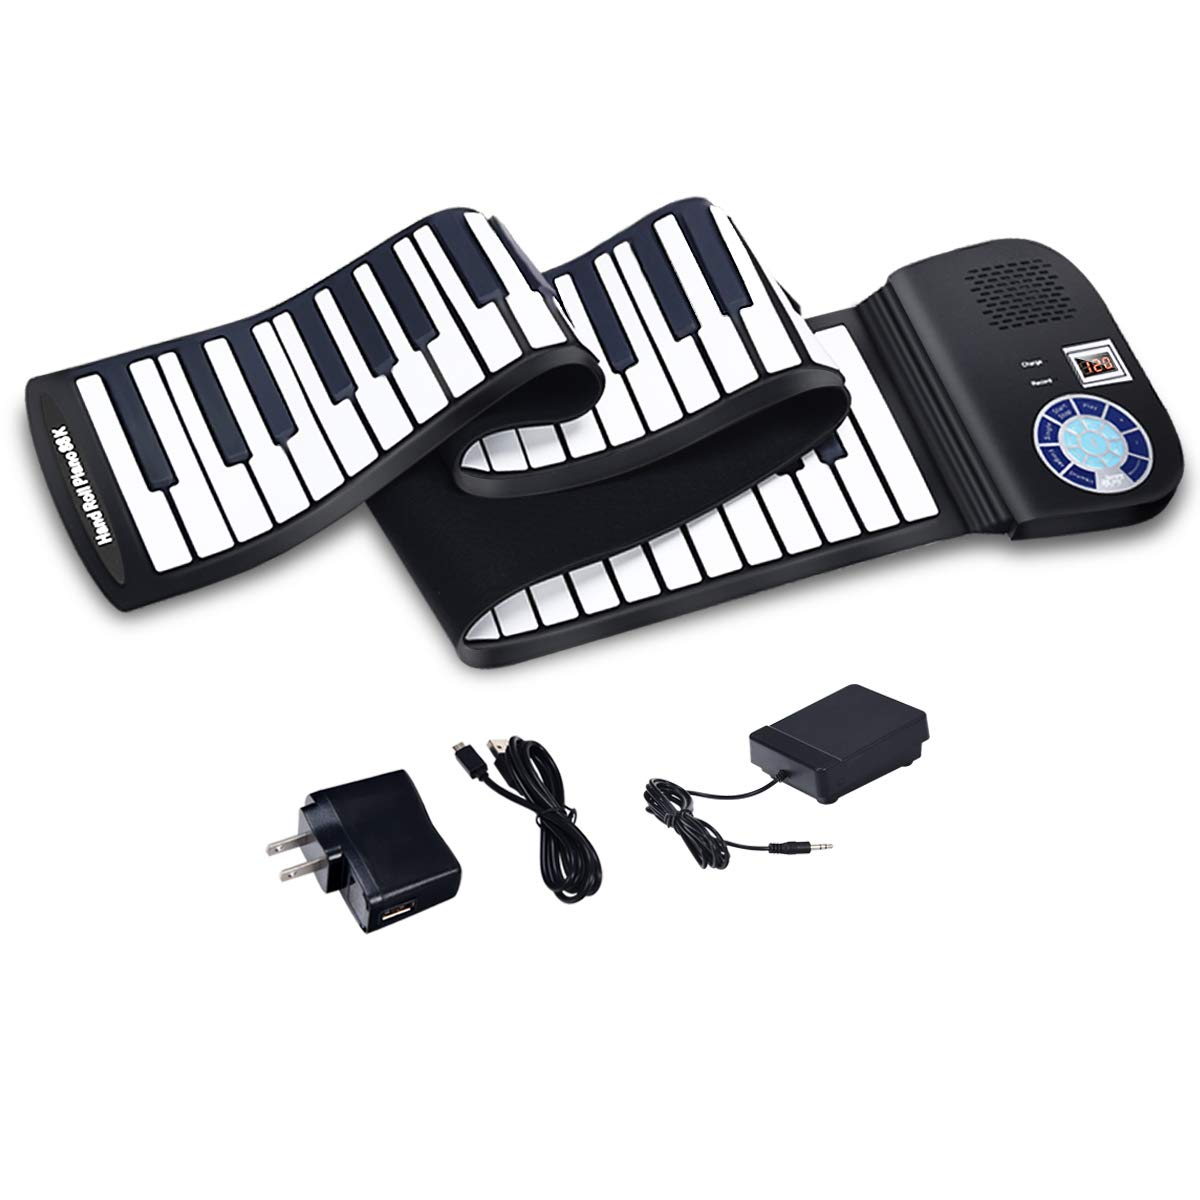 BABY JOY Roll Up Piano, Upgraded Electronic Piano Keyboard, Portable Piano w/Bluetooth, MP3 Headphone USB Input, MIDI OUT, 128 Rhythms, Record, Play, Volume Control (Black, 88Keys) by BABY JOY